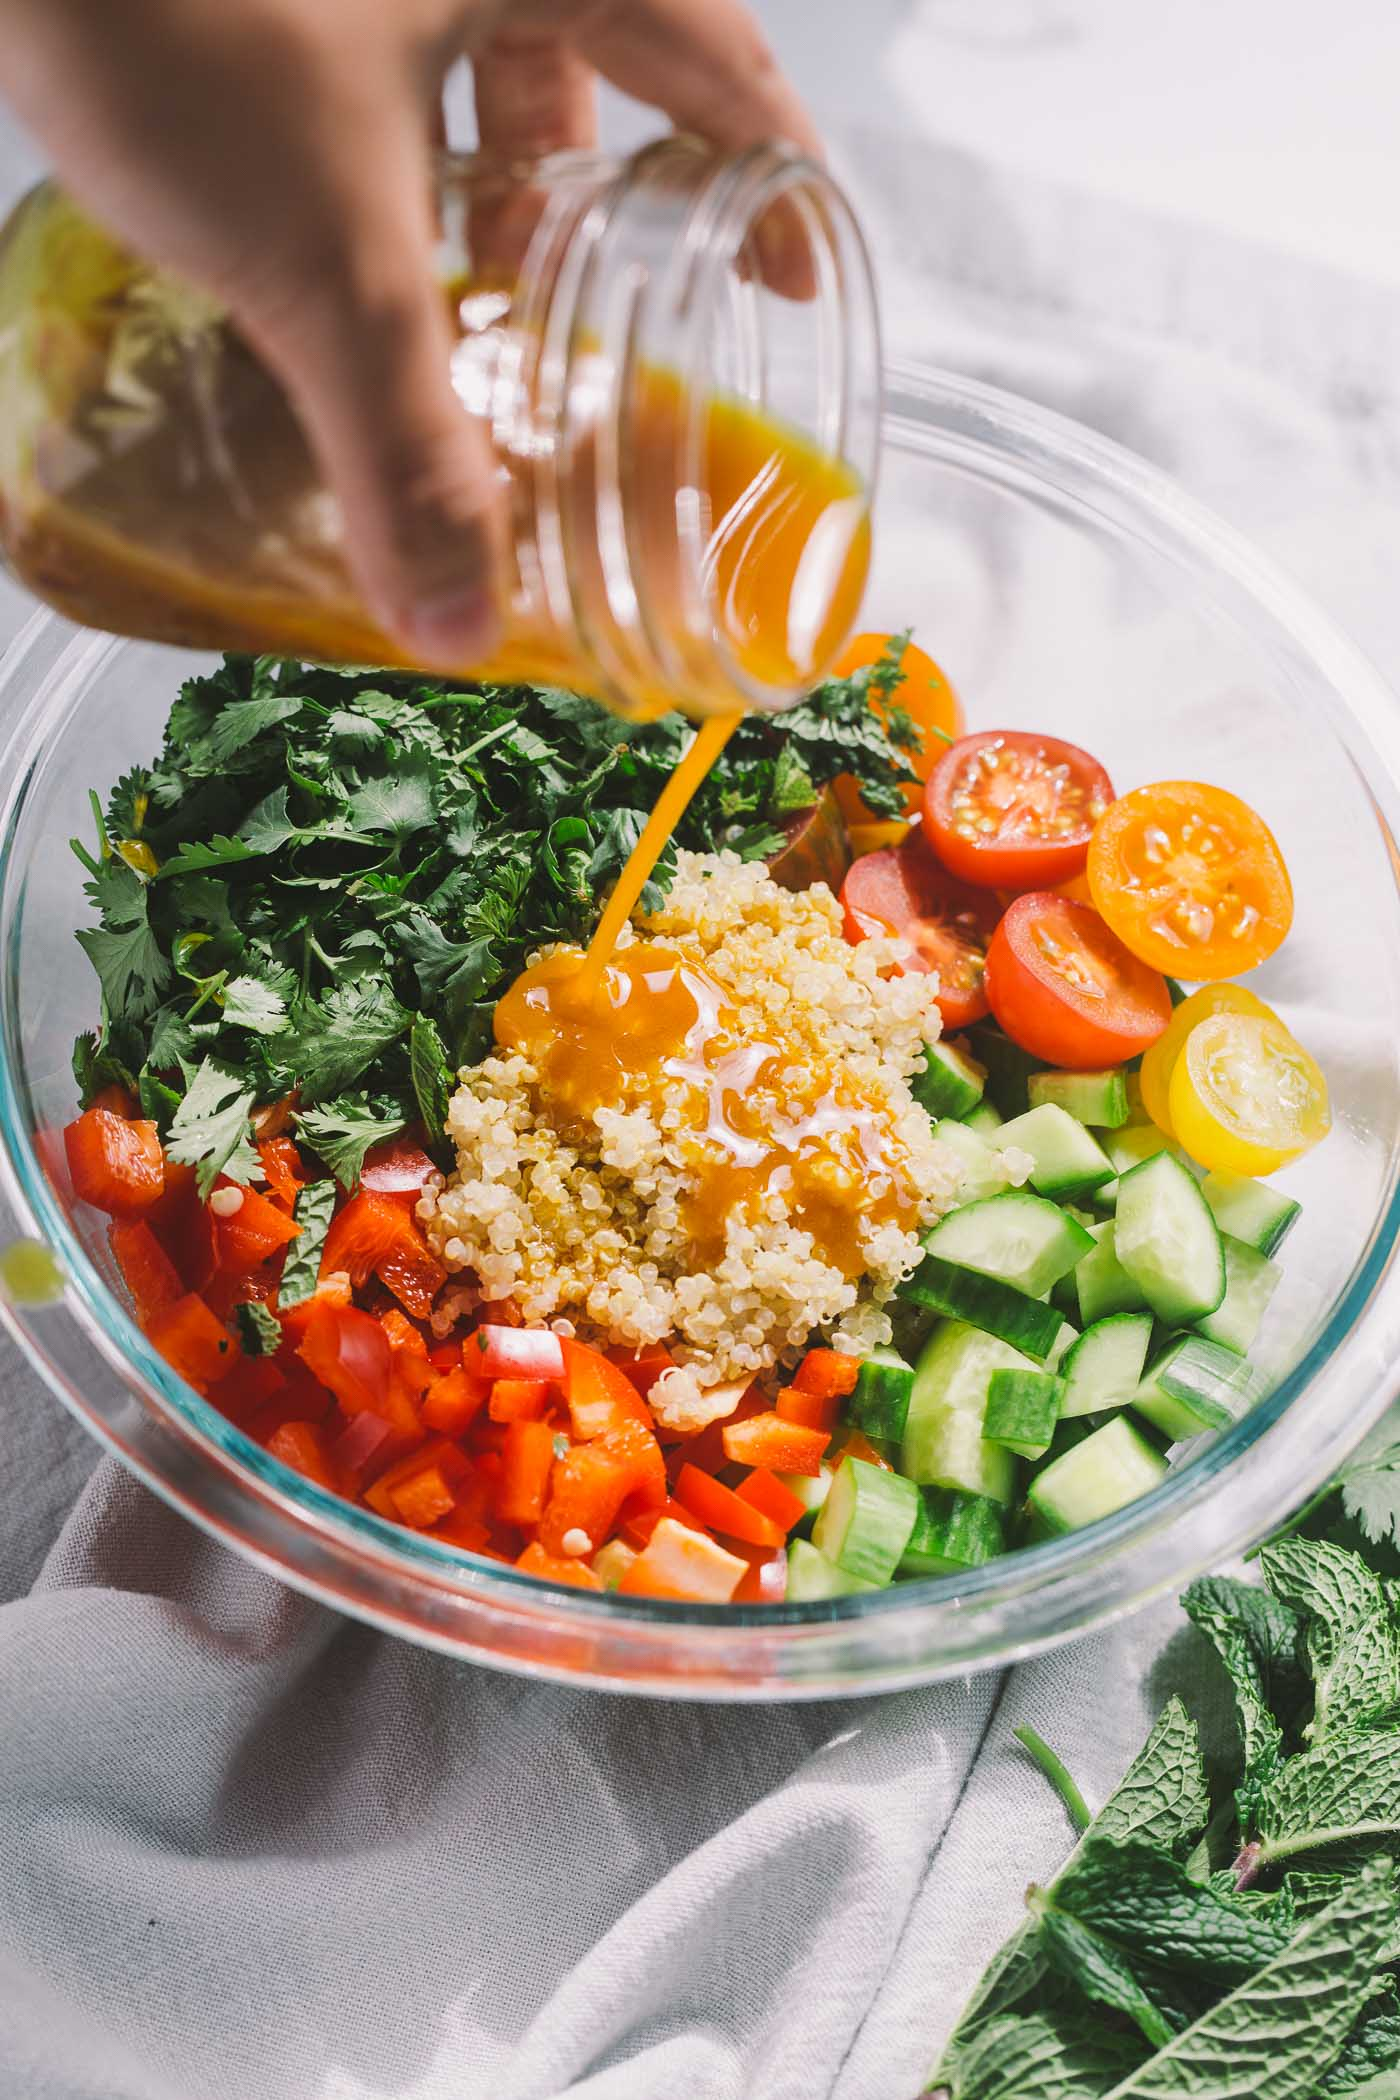 equal parts entrée salad & nourishing bowl, summer glow bowls are end of summer perfection. the best produce of the season (kale, arugula, red bell pepper, cucumber, heirloom tomatoes) is tossed with quinoa, fresh herbs, & a homemade curry vinaigrette. summertime, perfected!